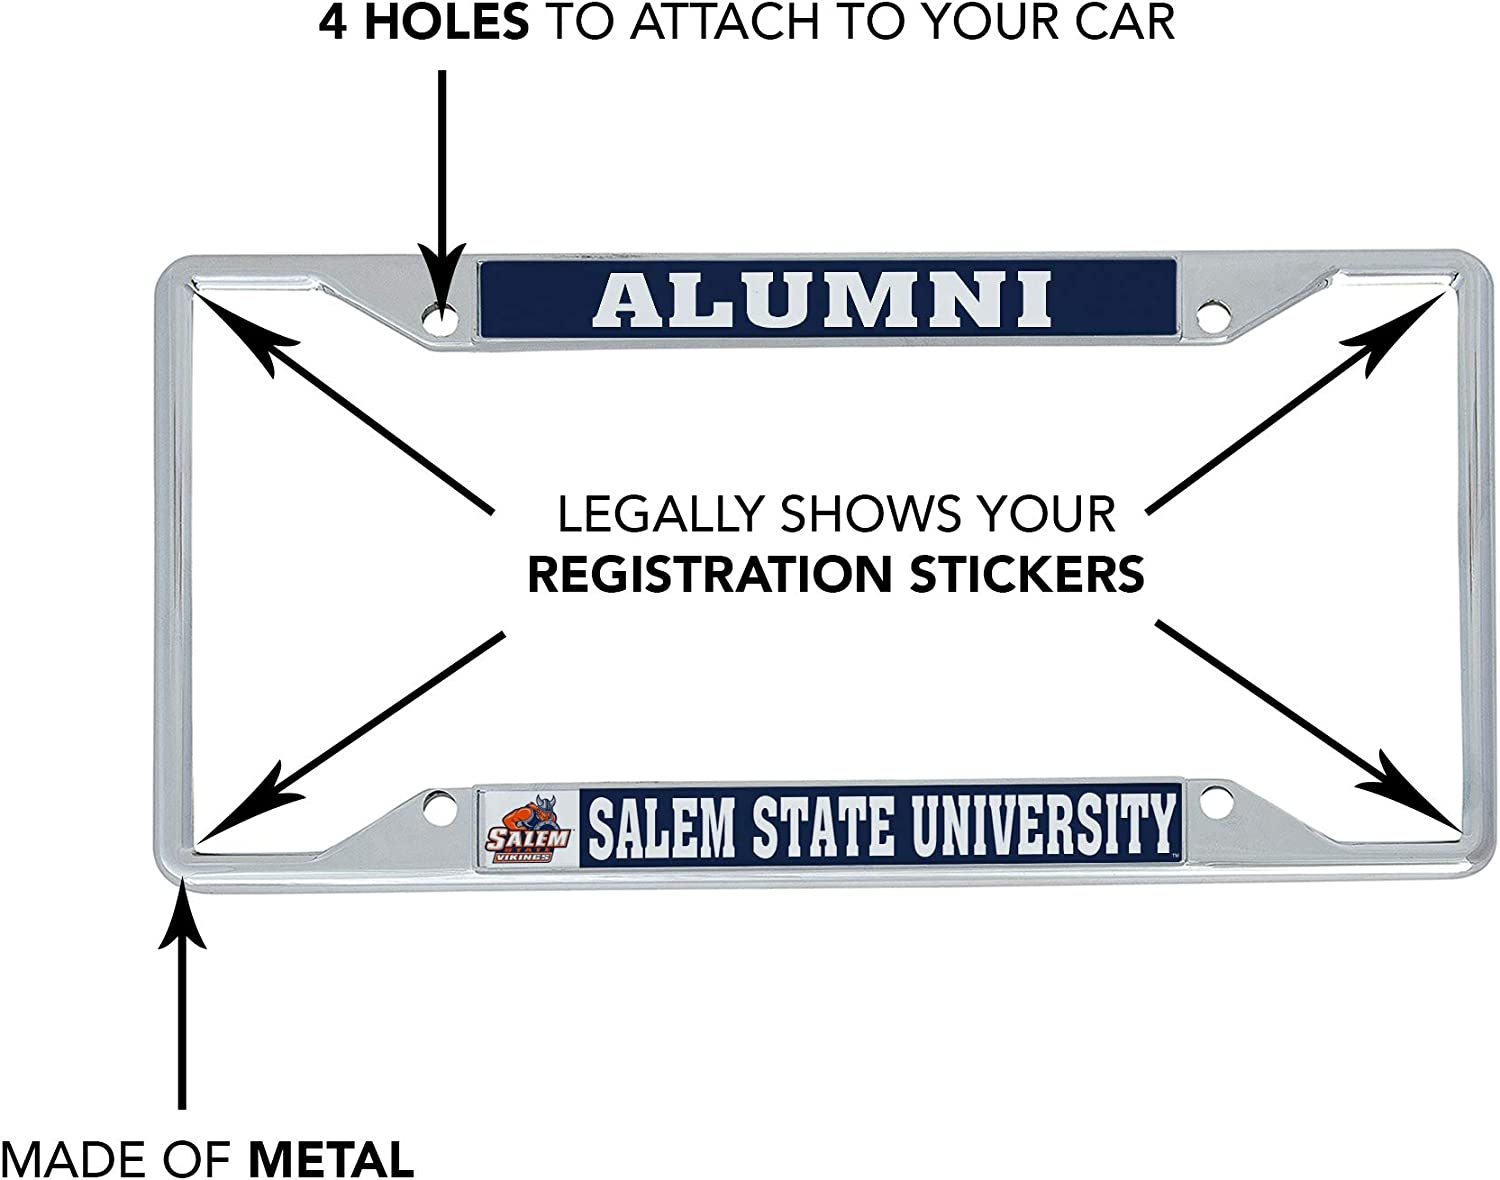 Alumni Desert Cactus Salem State University Vikings NCAA Metal License Plate Frame for Front or Back of Car Officially Licensed